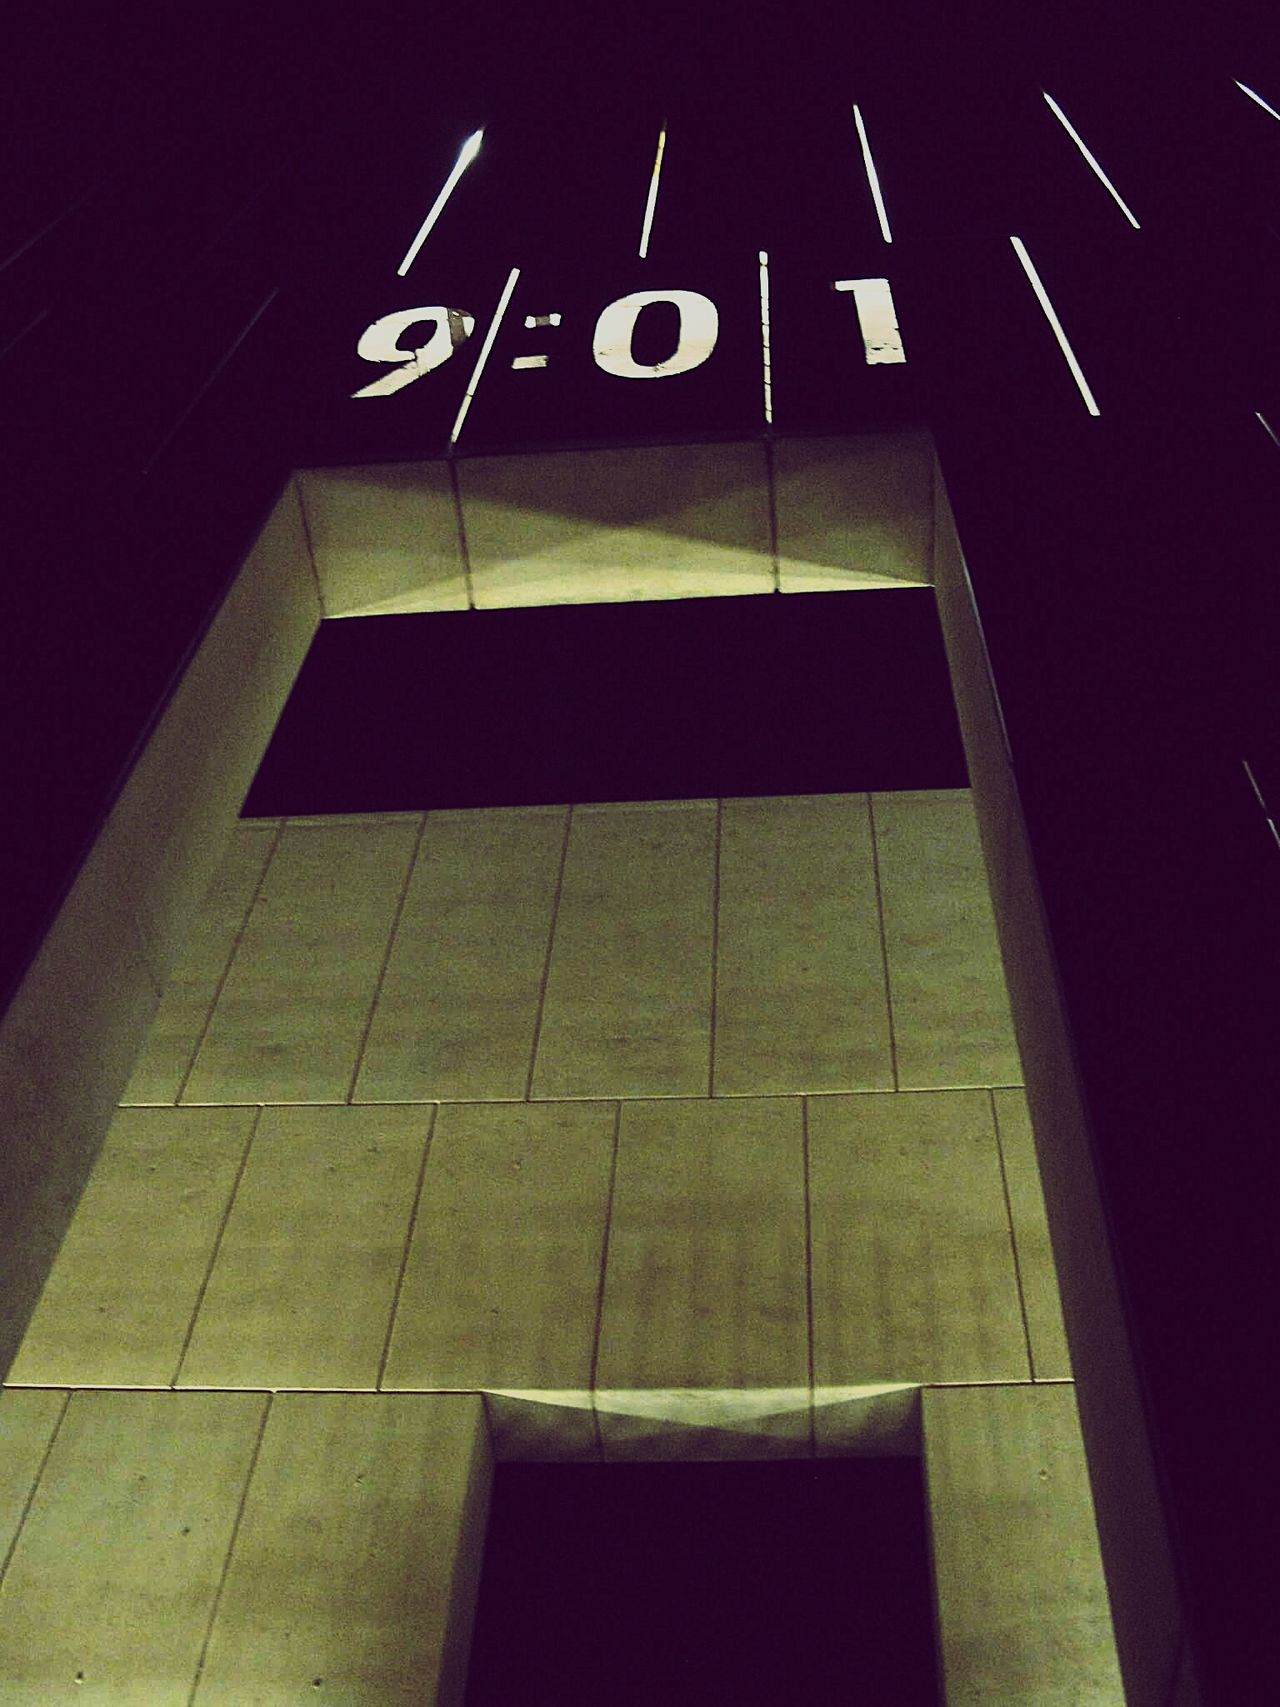 Oklahoma City Memorial Site 901 Time To Reflect Miss You Loved Ones Why...? Beginning The Architect - 2016 EyeEm Awards Cities At Night